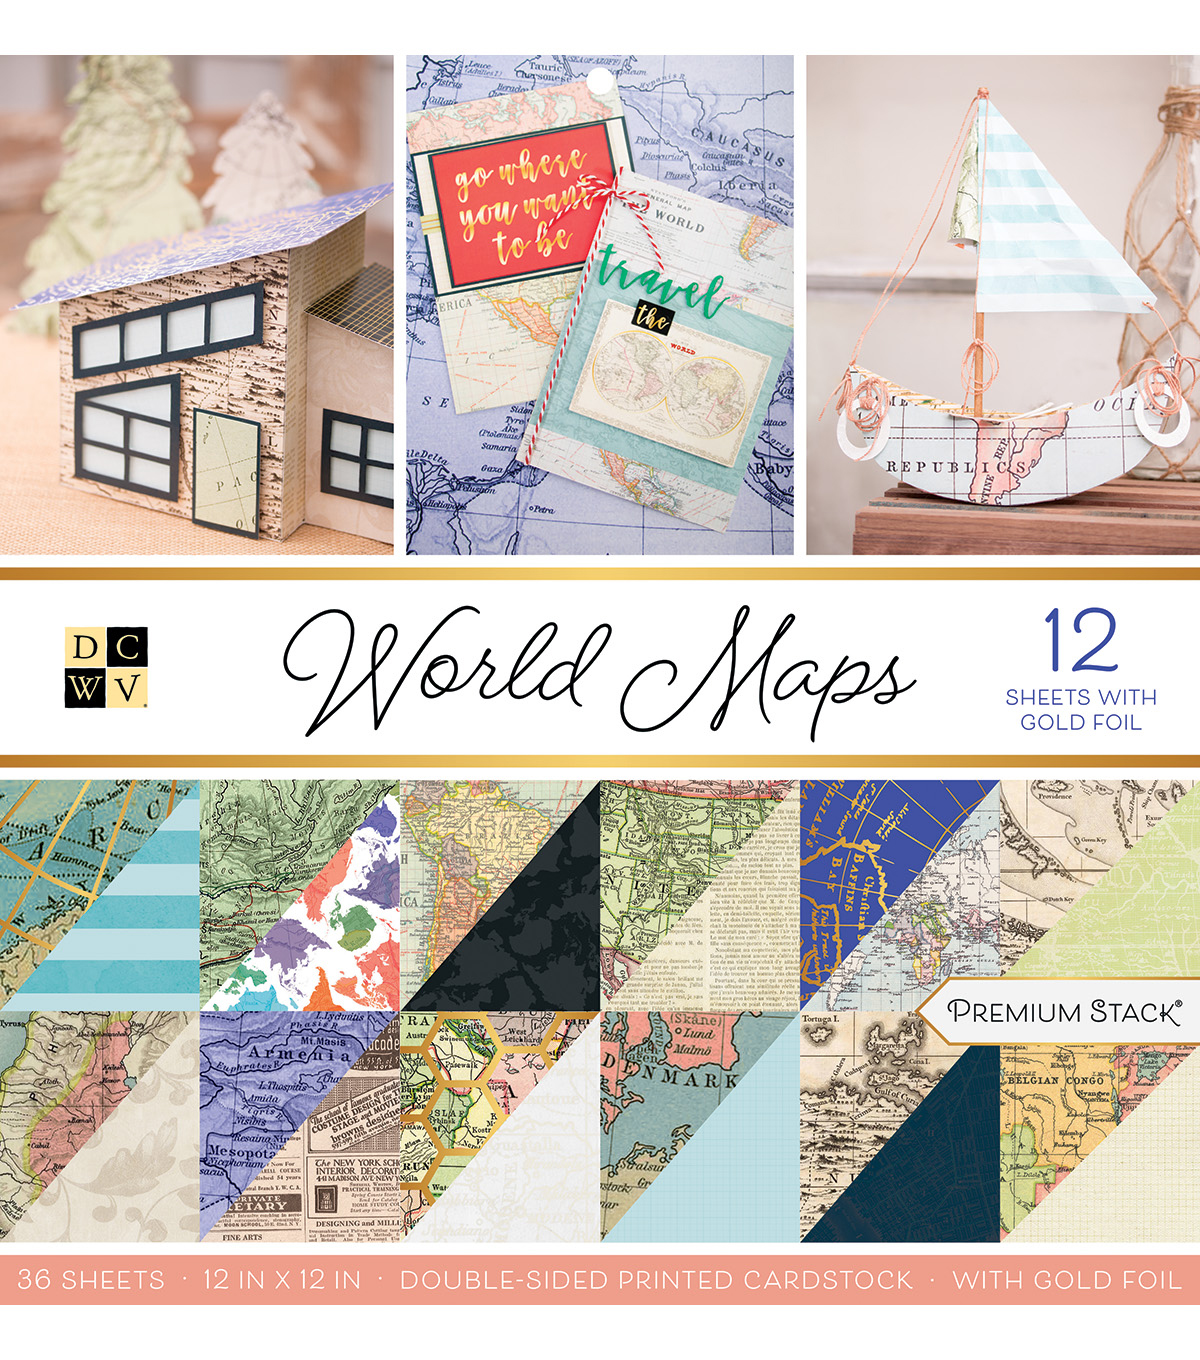 Dcwv 12x12 36 pack premium printed cardstock stack world maps dcwv 12u0027u0027x12u0027u0027 36 pack premium printed cardstock stack gumiabroncs Image collections